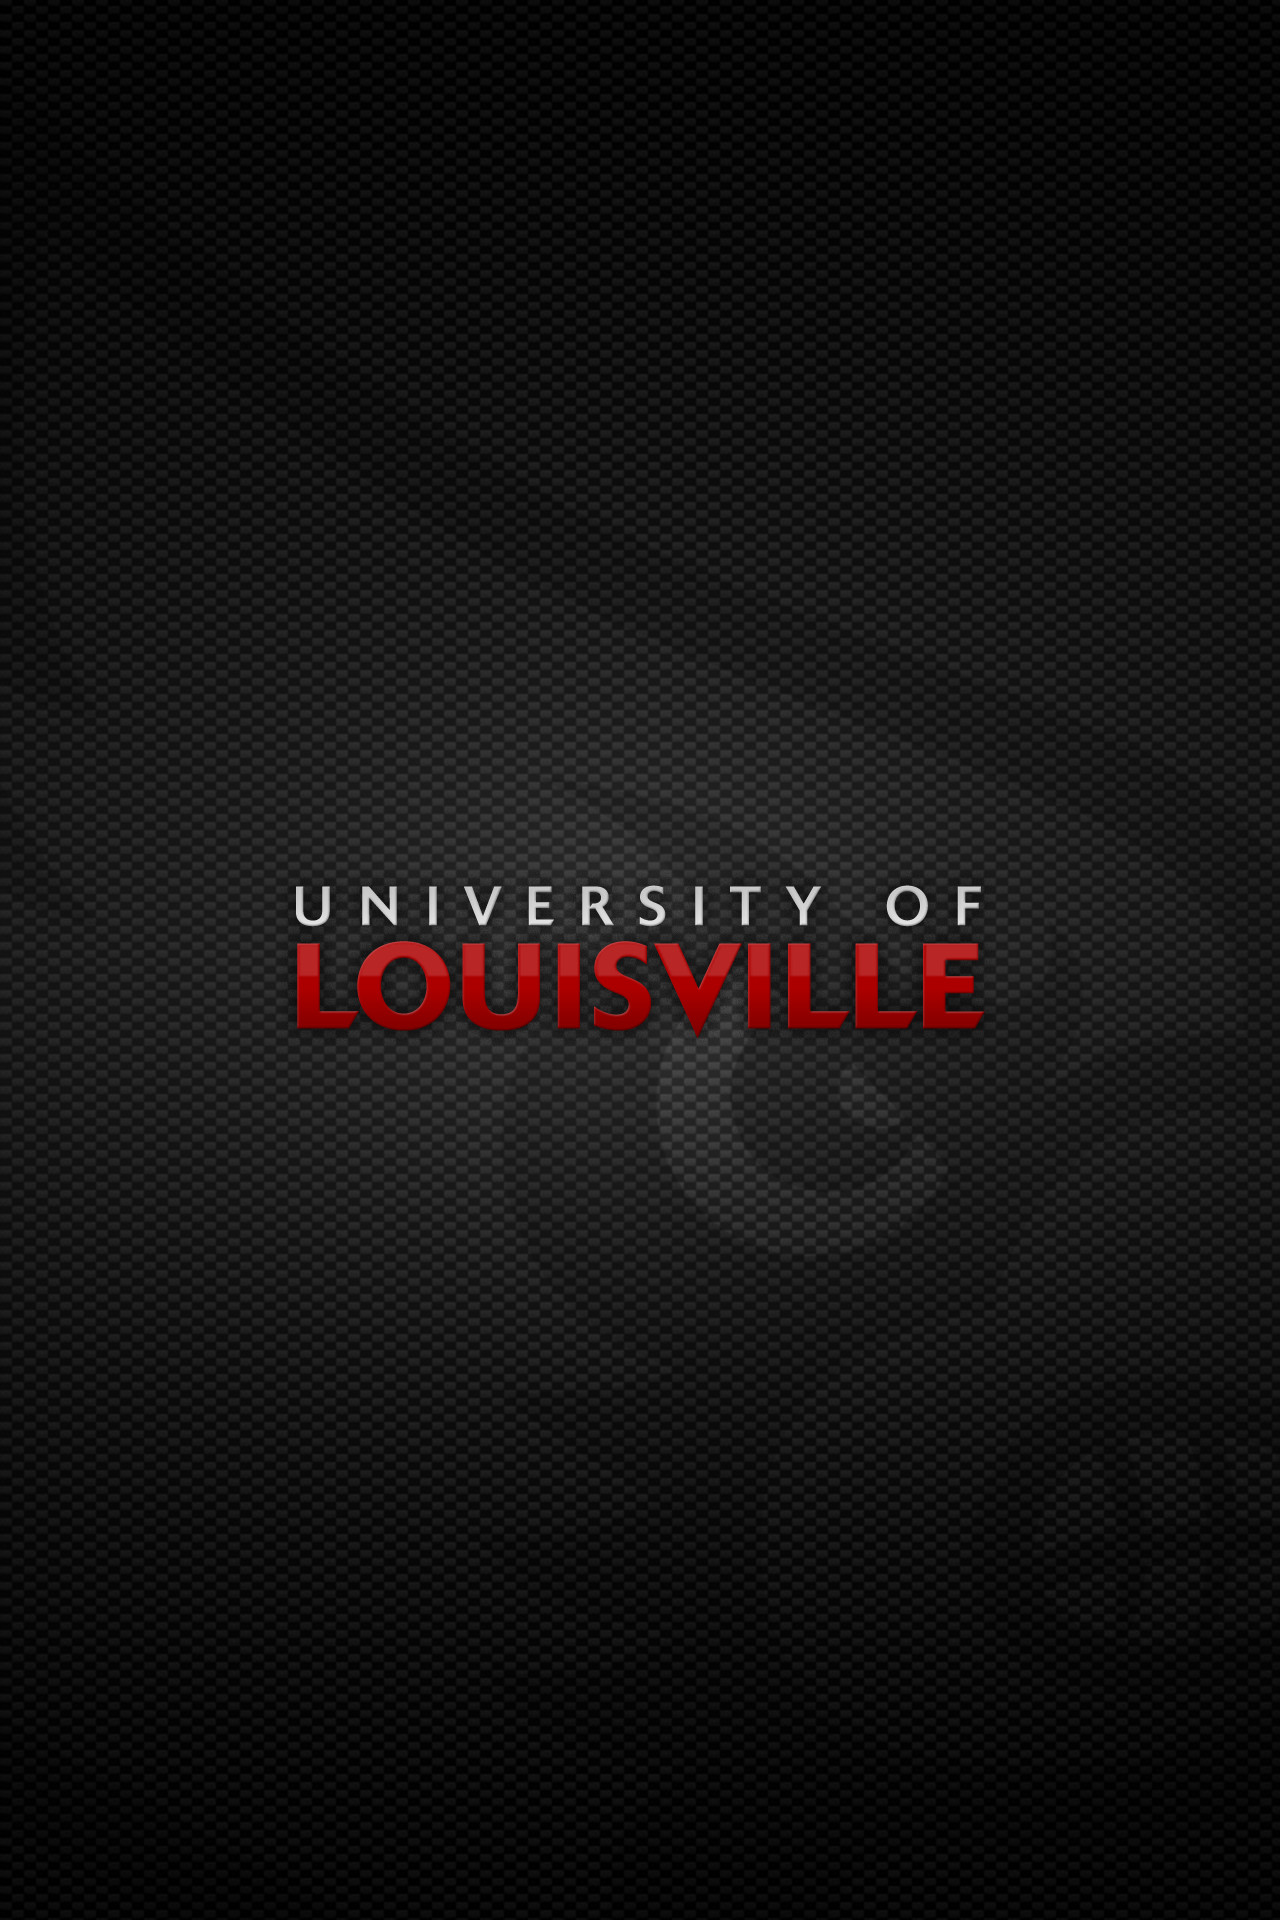 1280x1920 Louisville Cardinals HD Wallpapers in FHDQ | , by Beverley Hayward